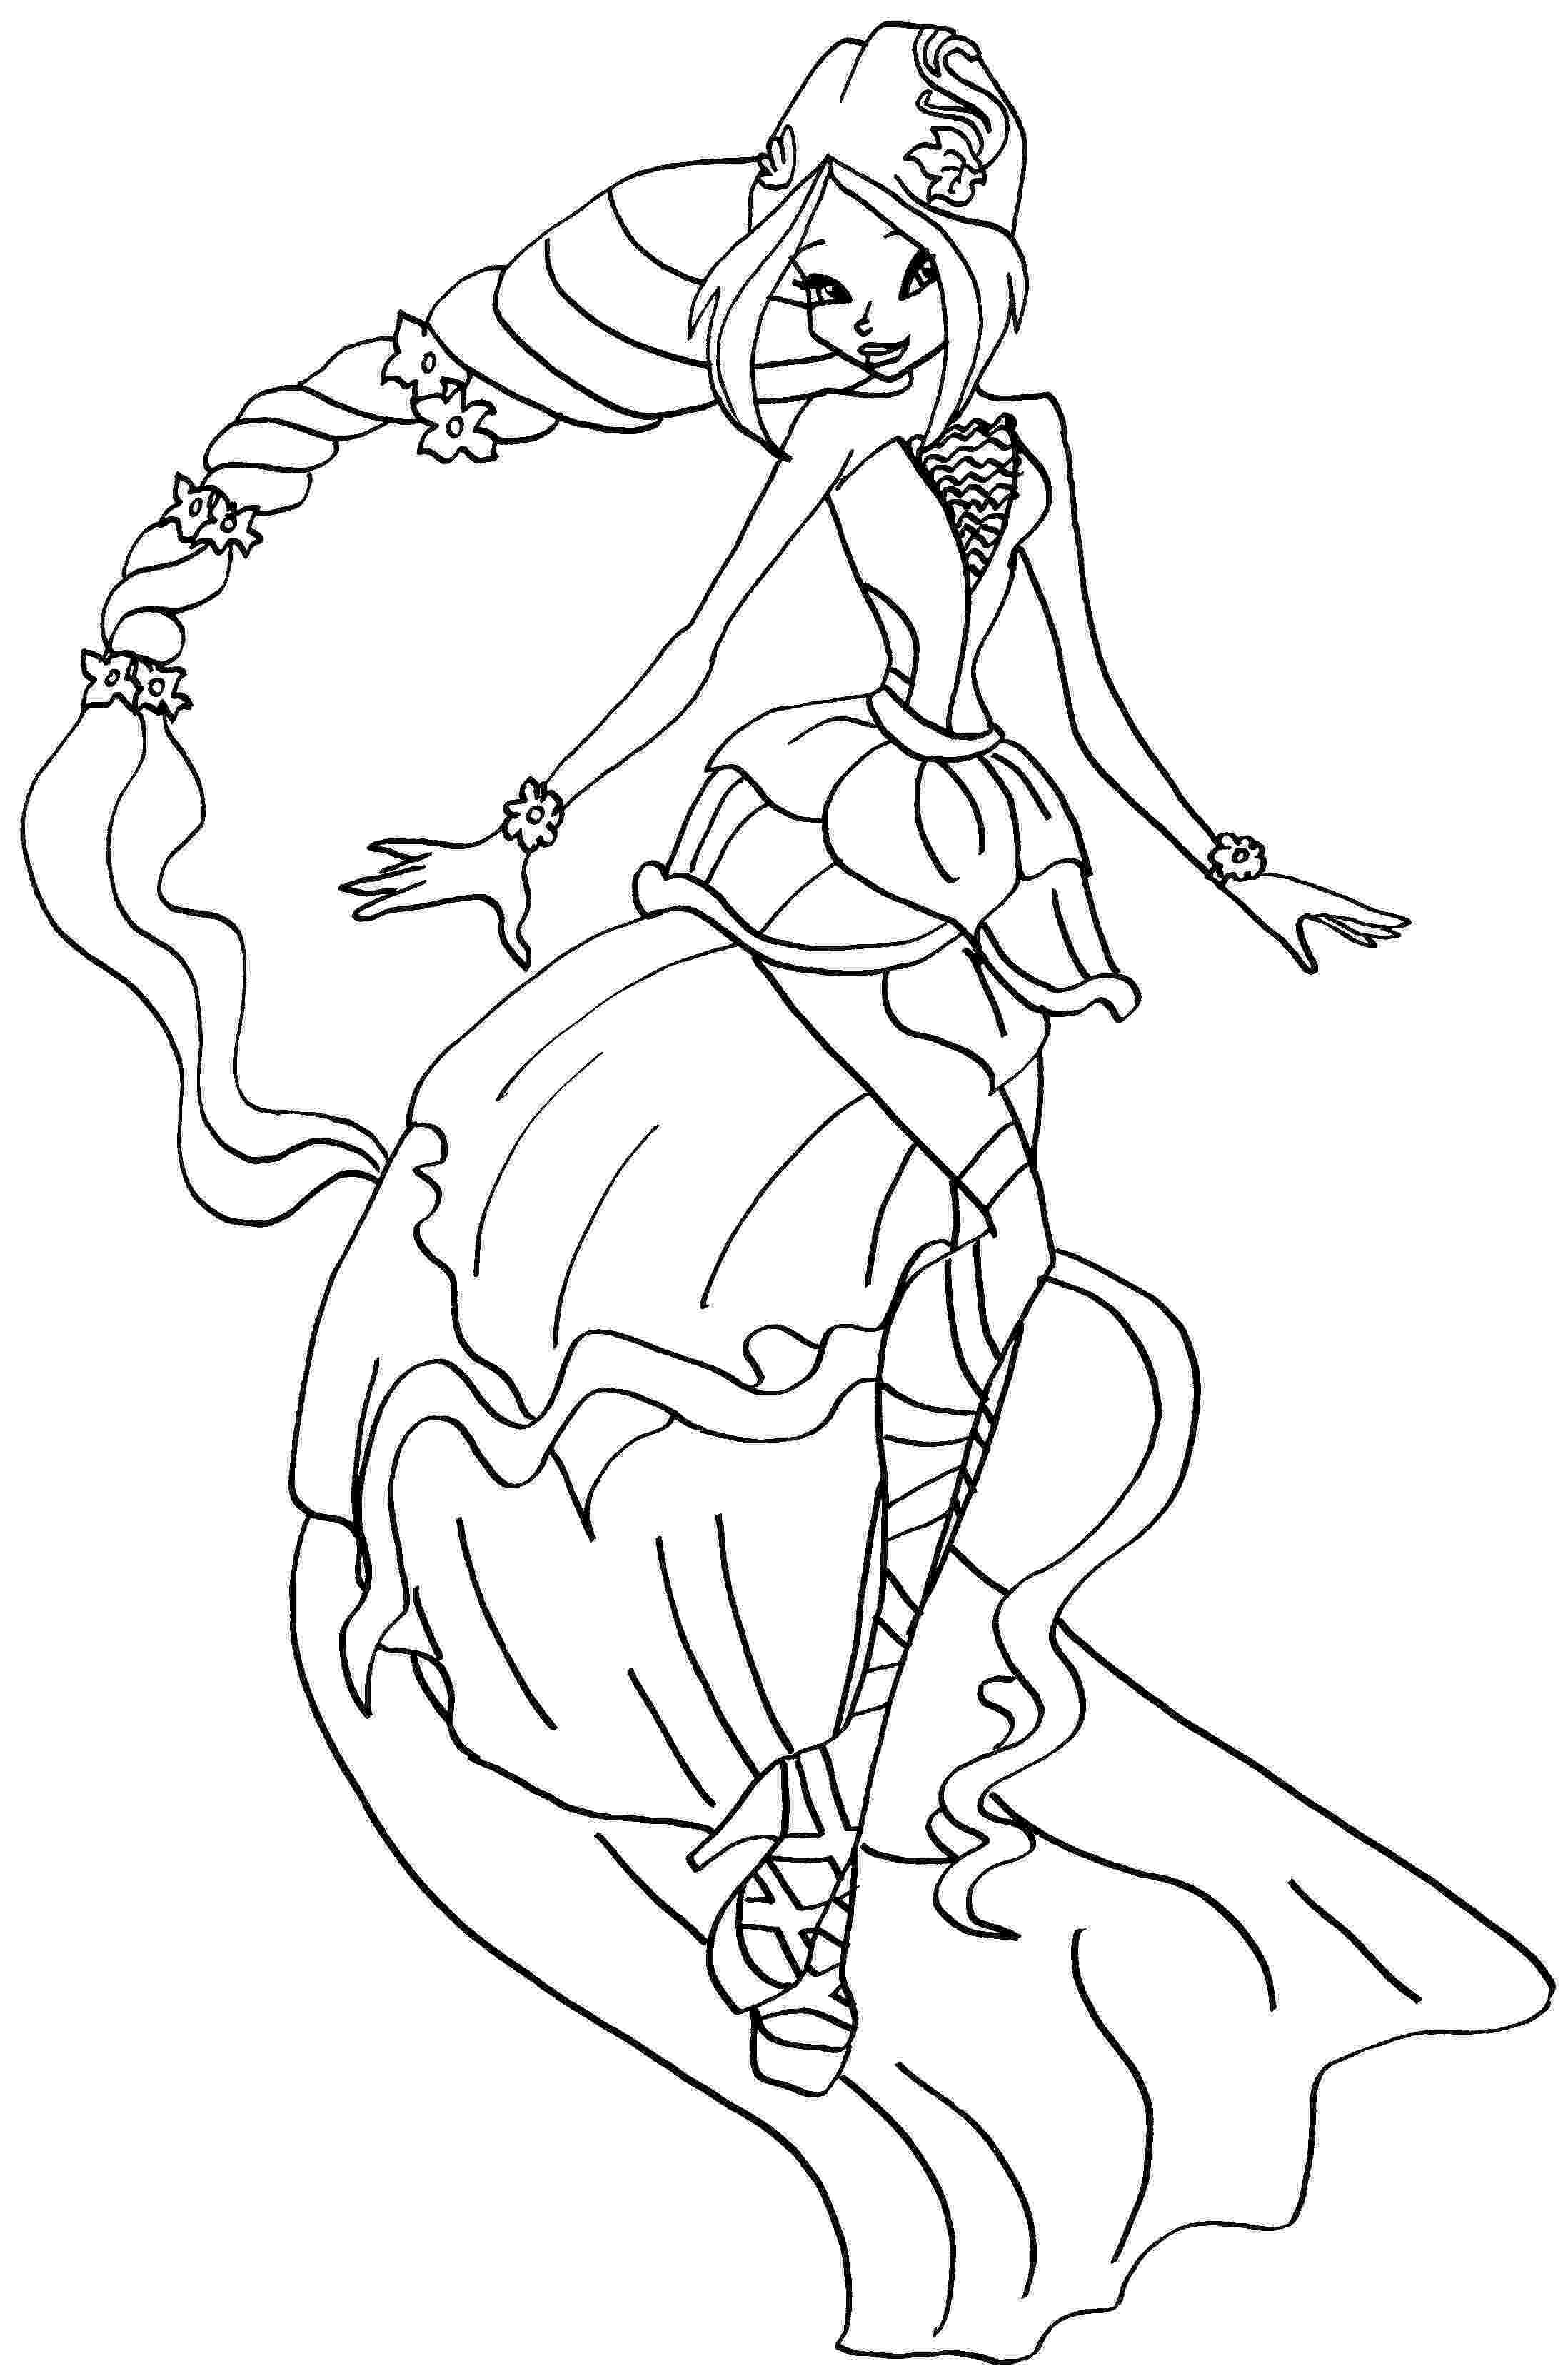 winx club coloring pages layla layla winx coloring pages download and print layla winx club layla pages winx coloring